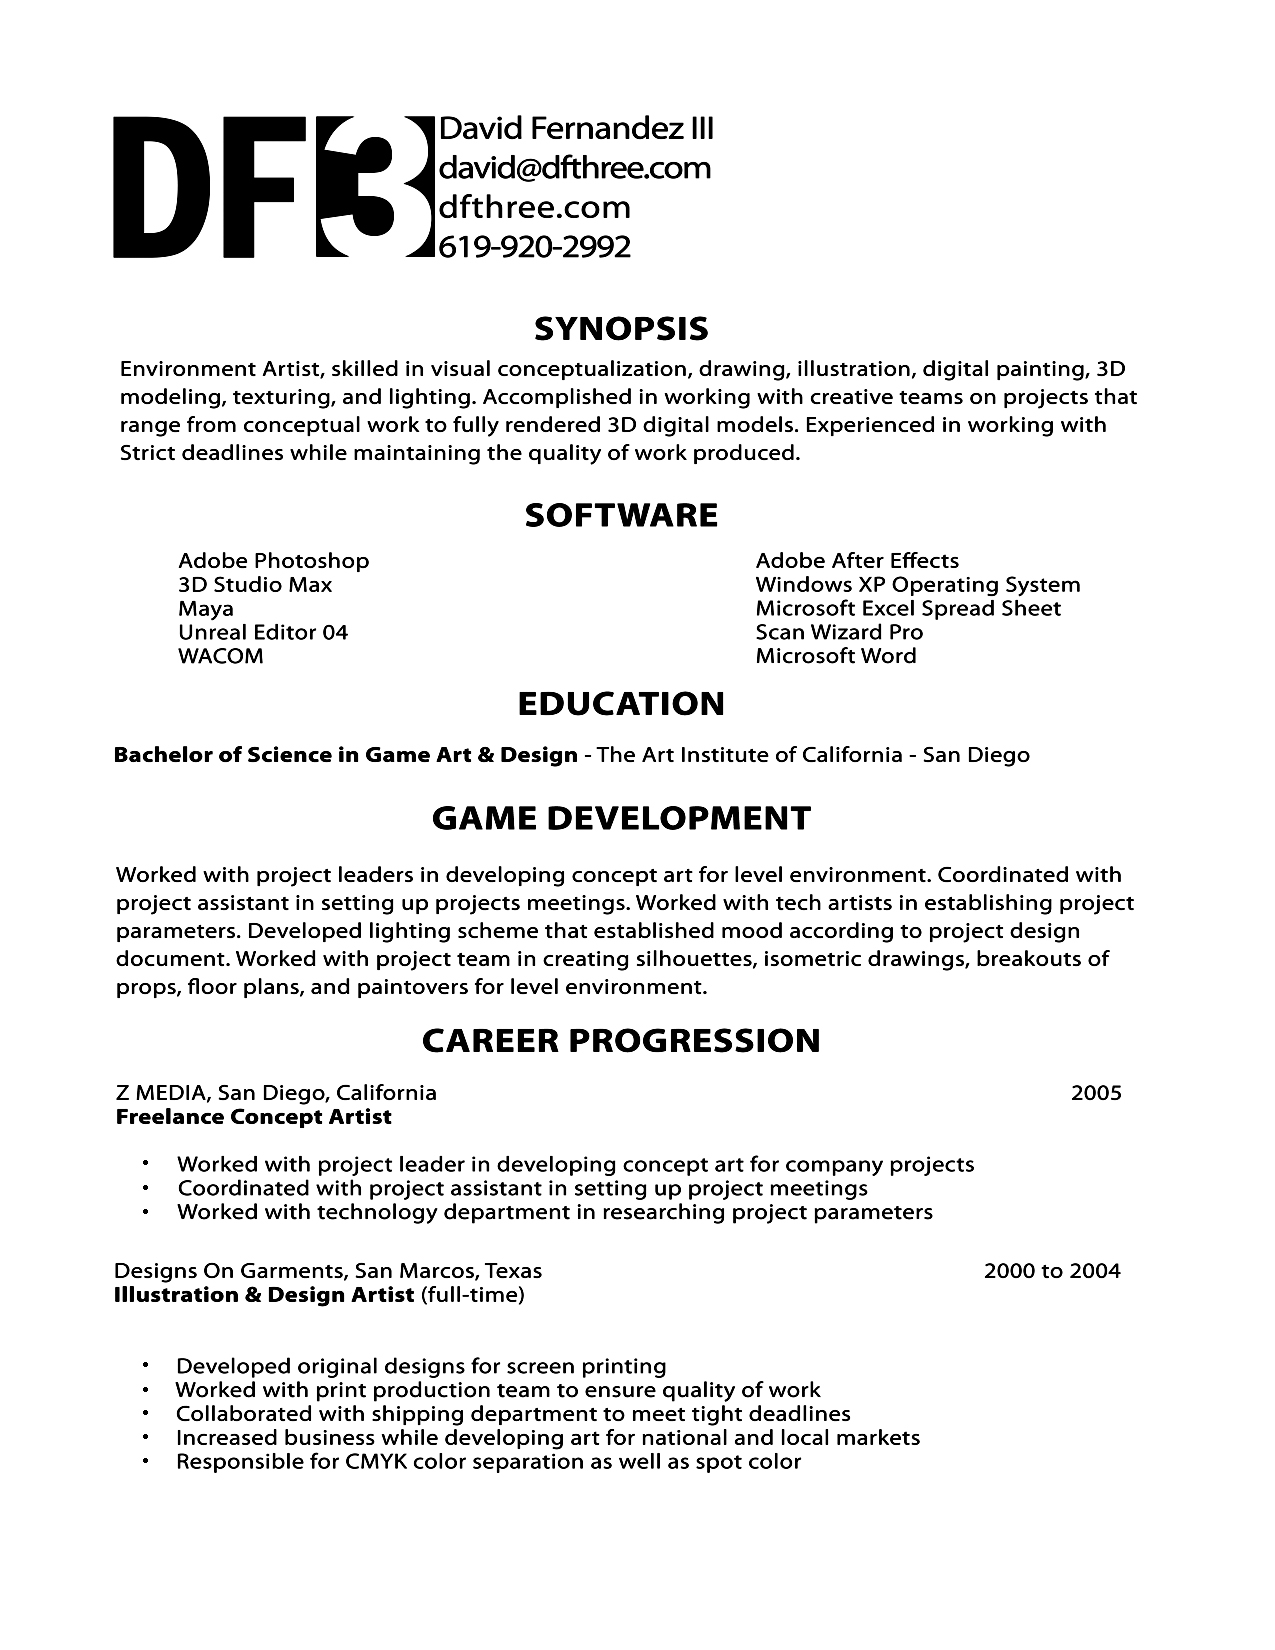 Opposenewapstandardsus  Seductive Game Developer Resume Game Tester Resume Sample Game Tester  With Lovable Better Jobs Faster With Breathtaking College Instructor Resume Also Print Out Resume In Addition How To Start A Resume Letter And Career Change Resume Templates As Well As Resume Areas Of Expertise Additionally Skills For Resume Examples For Customer Service From Kelseymarieco With Opposenewapstandardsus  Lovable Game Developer Resume Game Tester Resume Sample Game Tester  With Breathtaking Better Jobs Faster And Seductive College Instructor Resume Also Print Out Resume In Addition How To Start A Resume Letter From Kelseymarieco